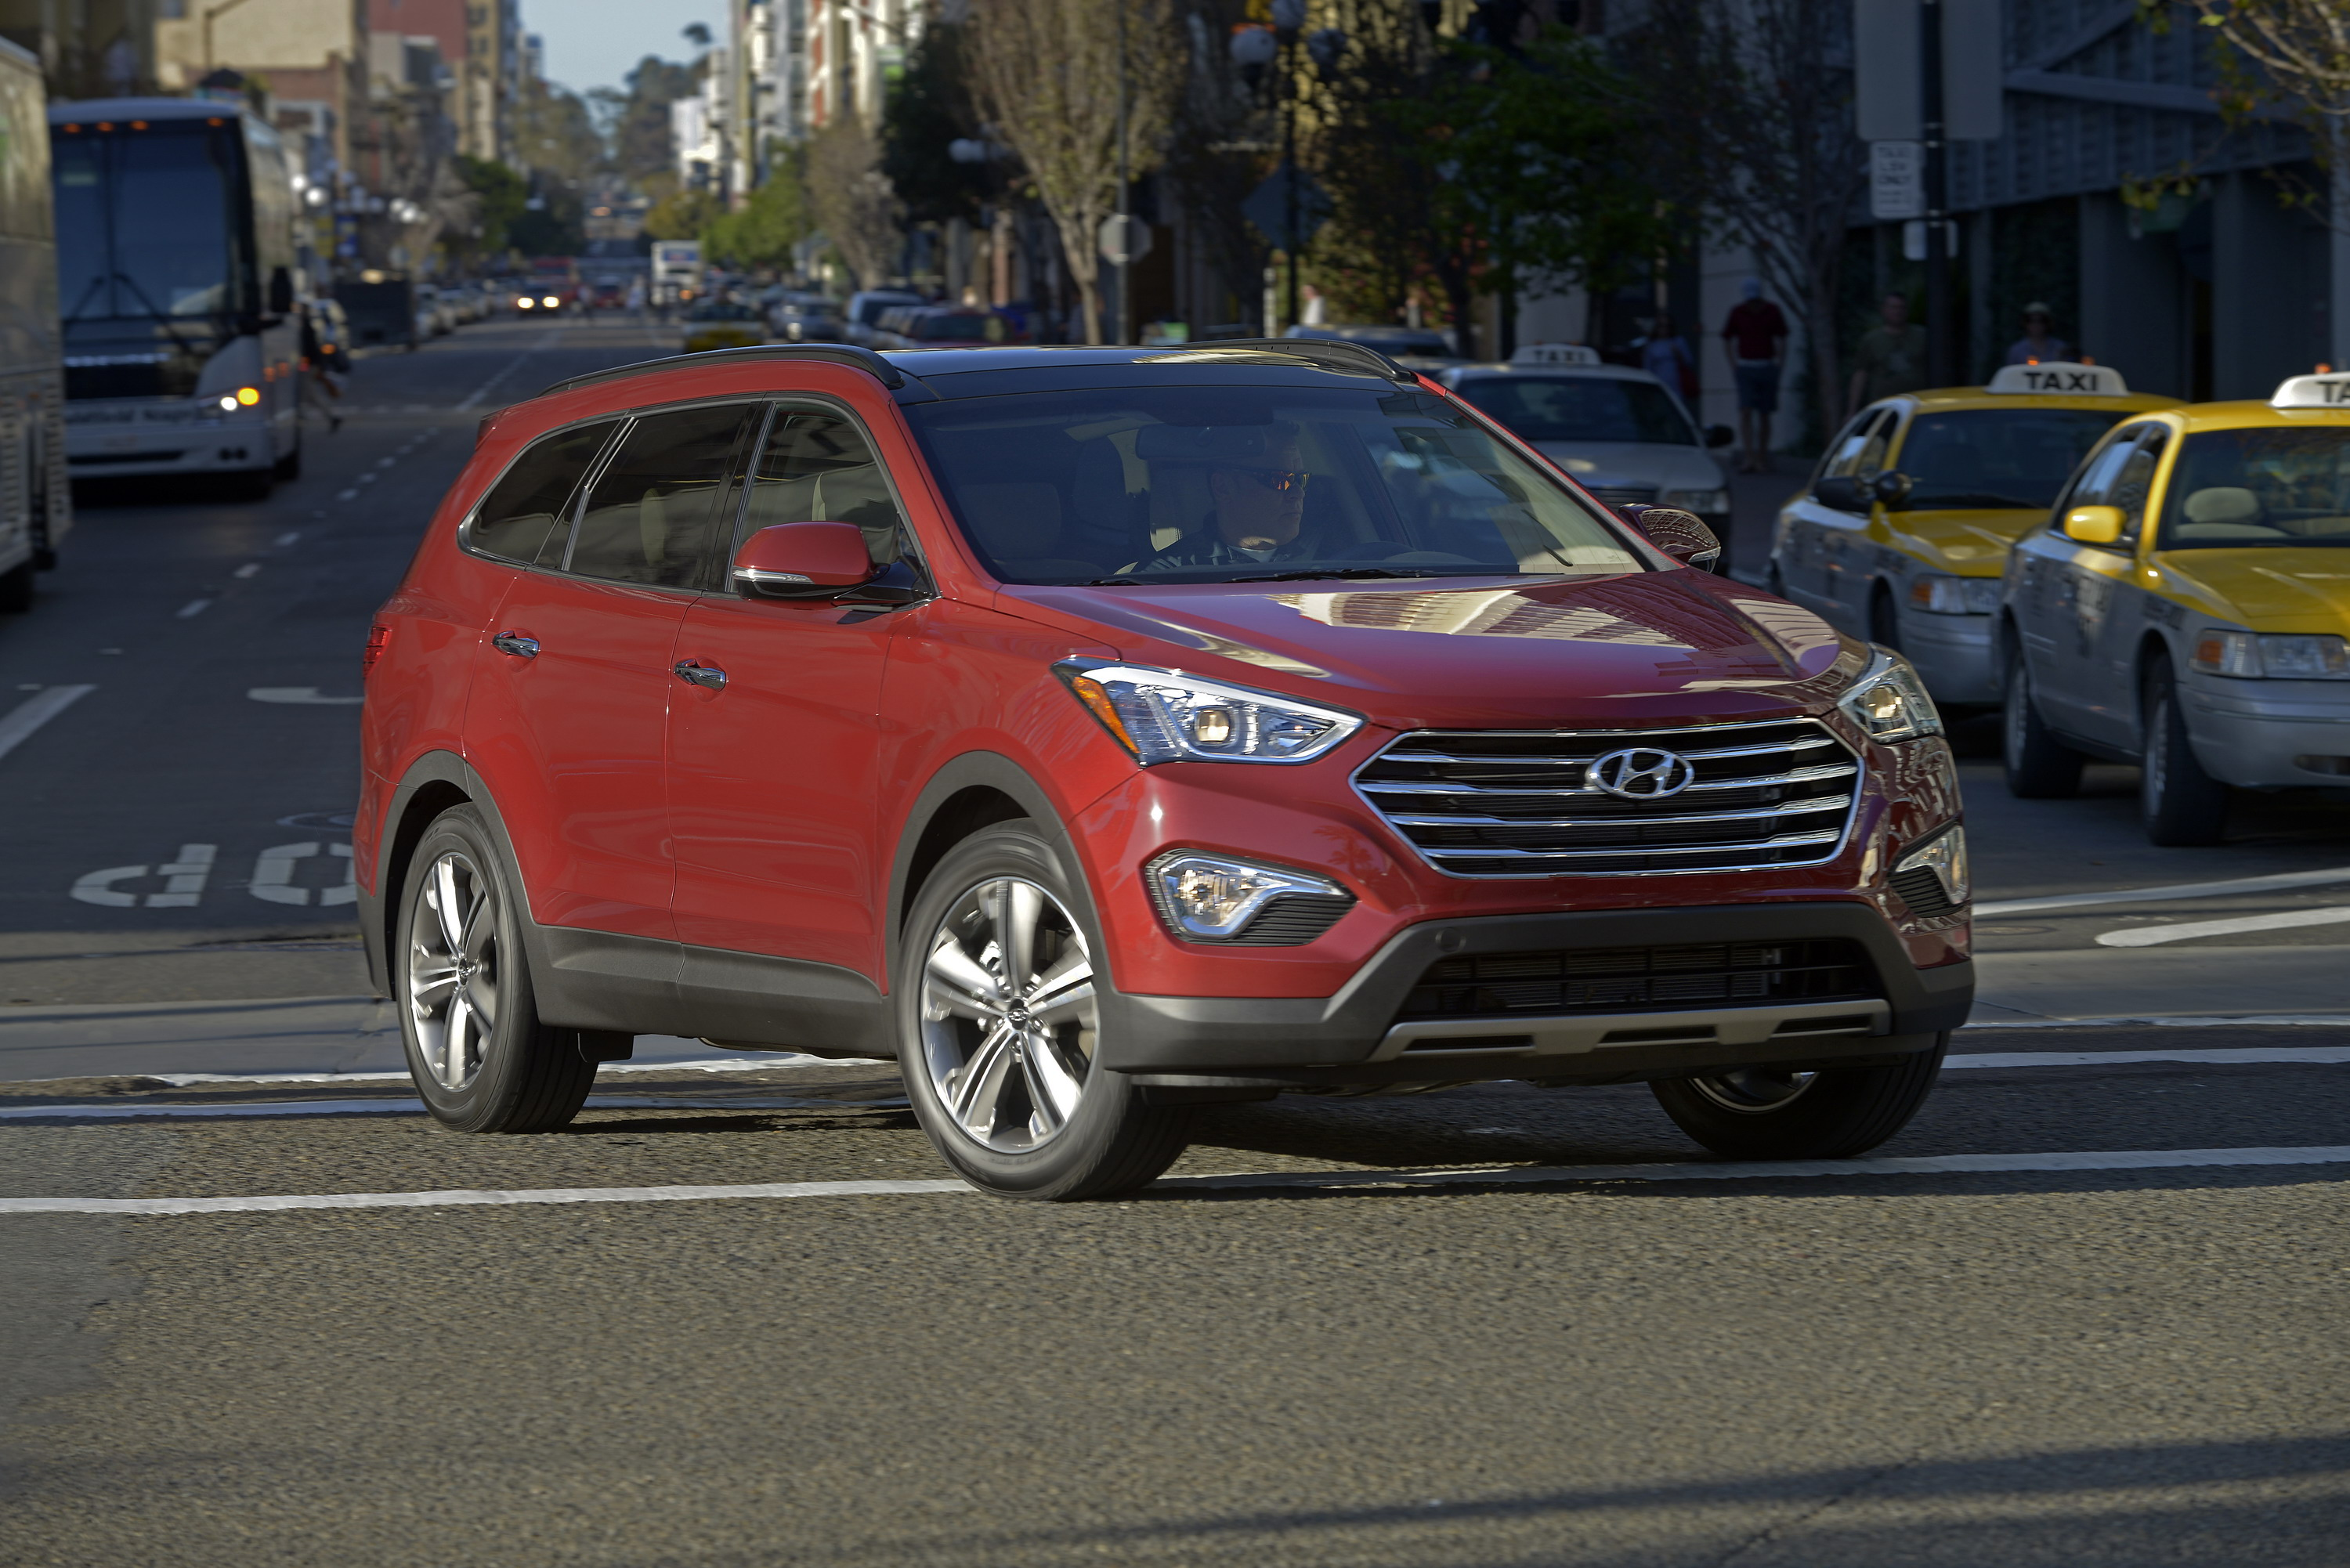 2014 hyundai santa fe review gallery top speed. Black Bedroom Furniture Sets. Home Design Ideas